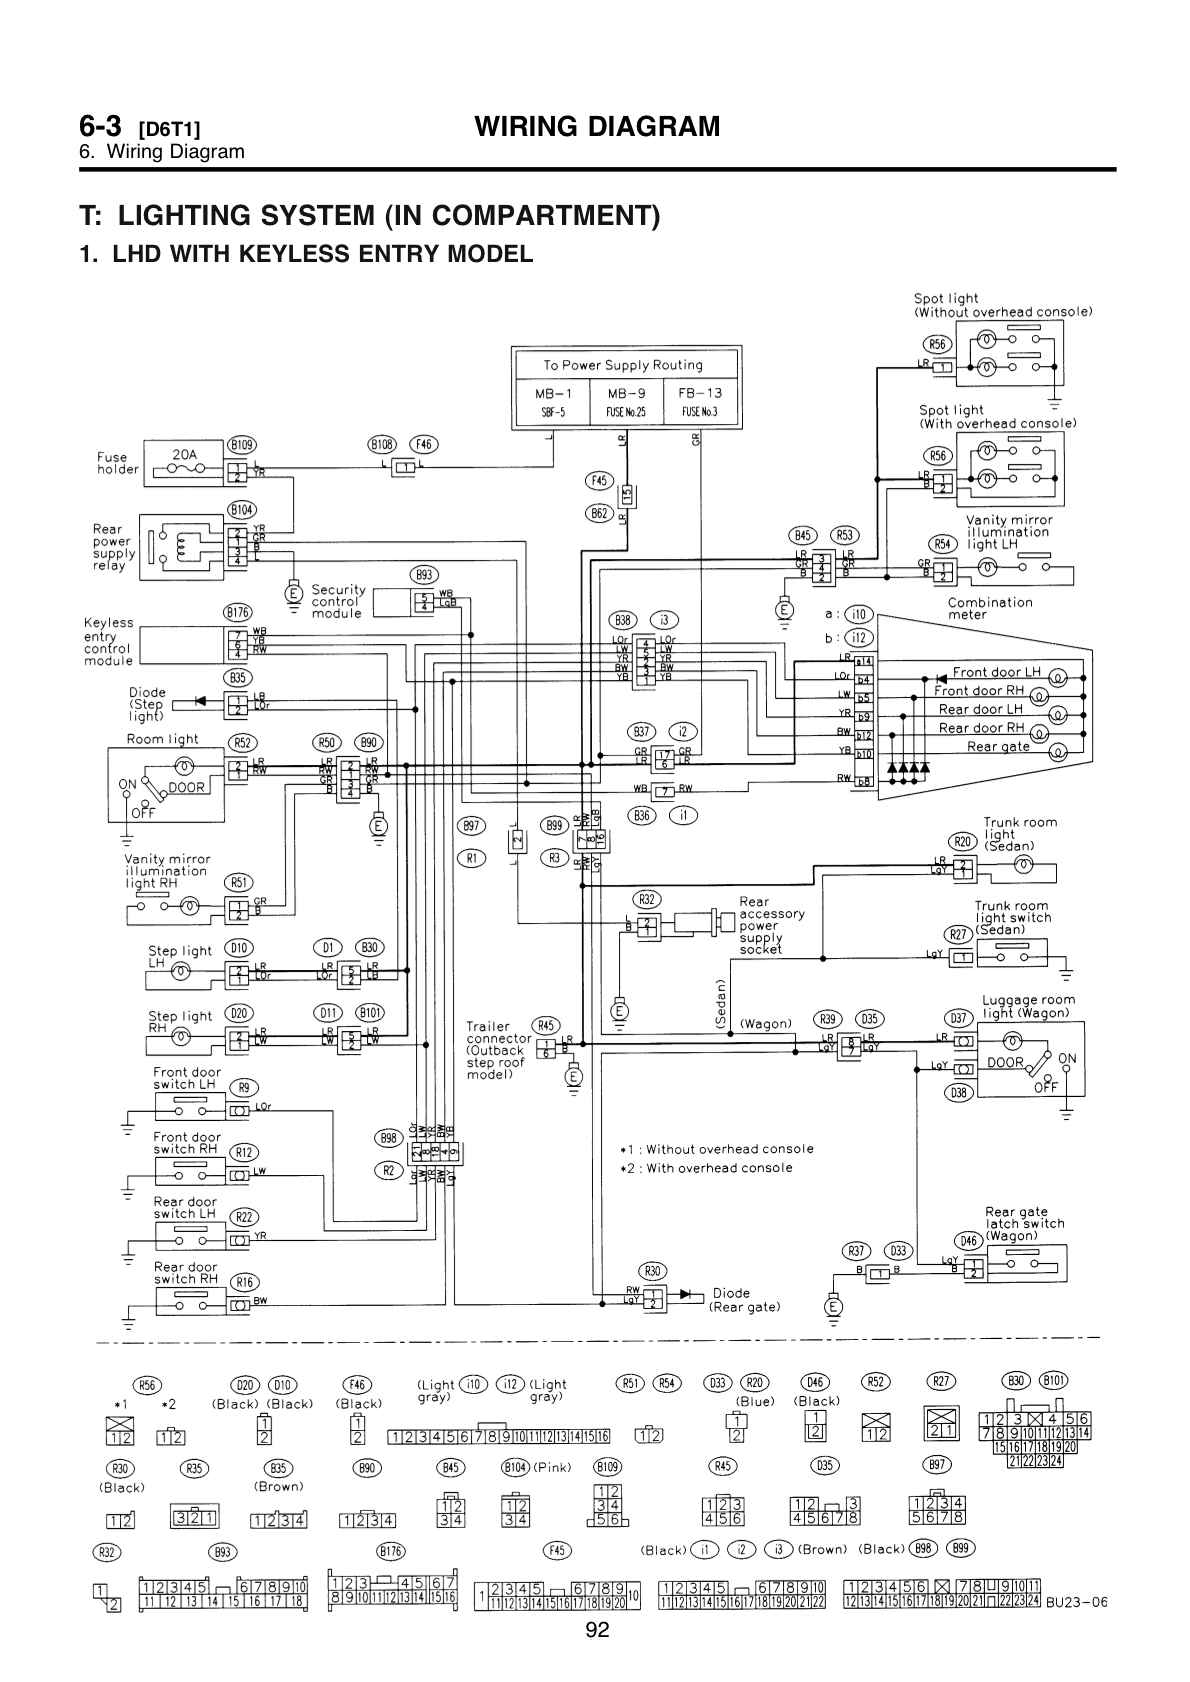 2002 subaru wire harness diagram | wiring diagram  wiring diagram - autoscout24